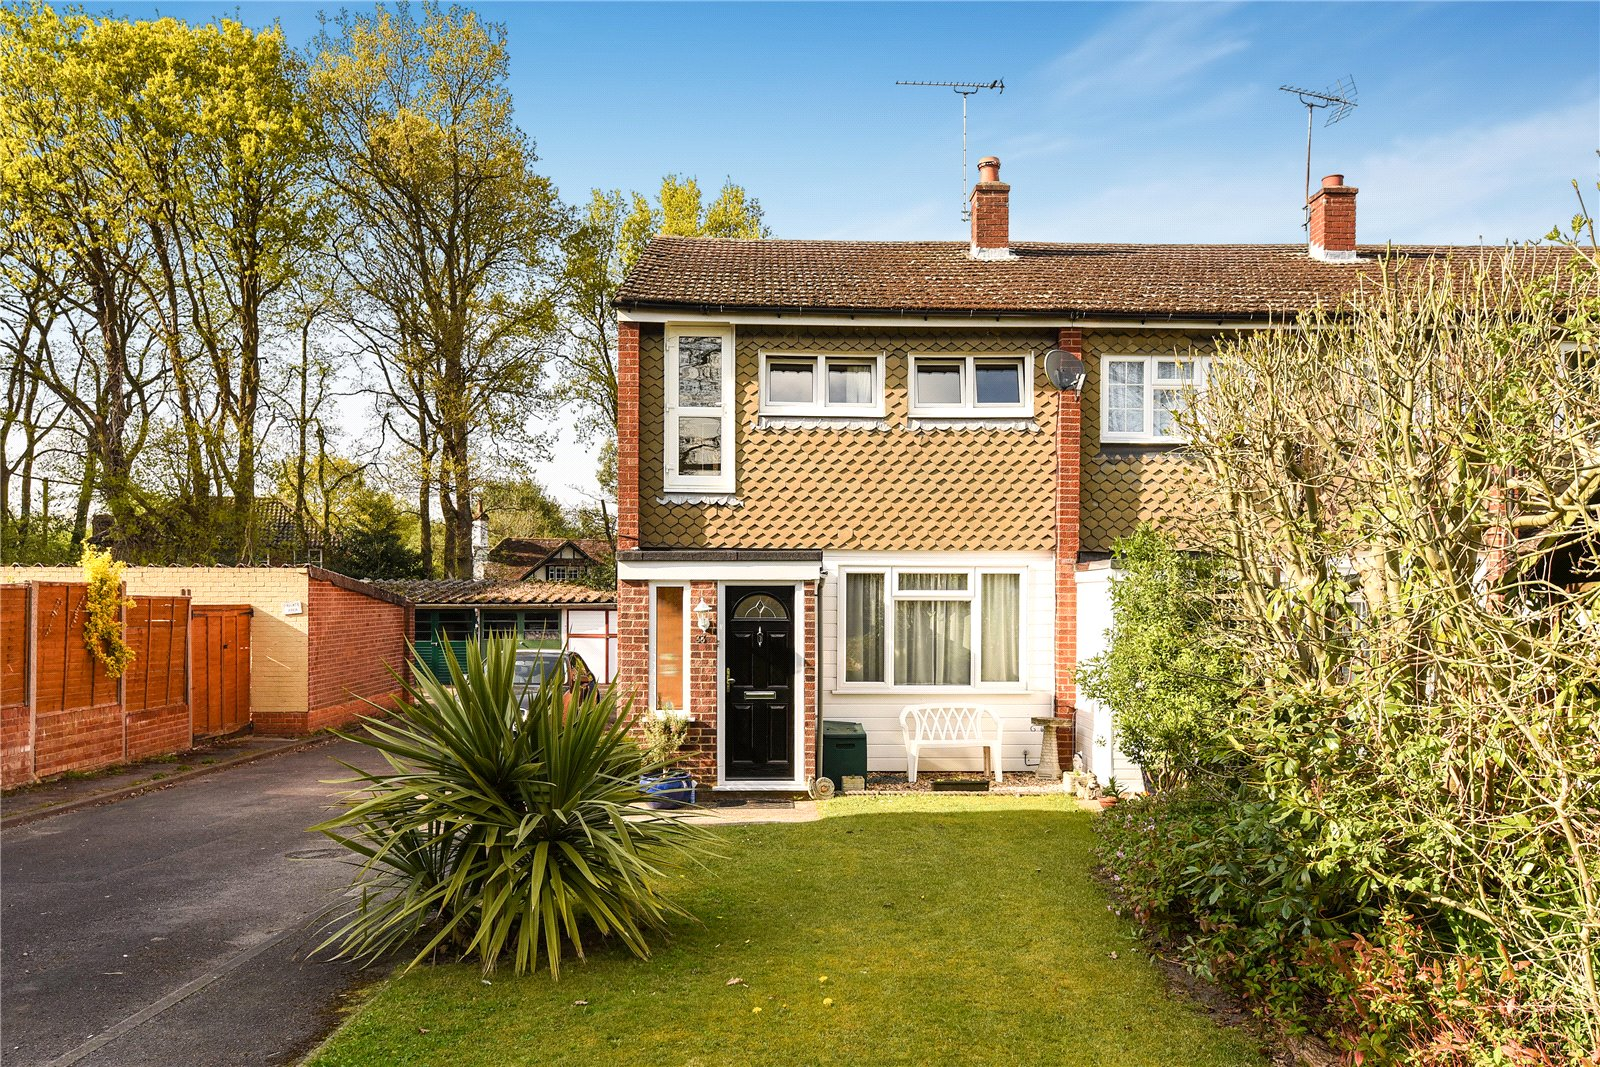 3 Bedrooms End Of Terrace House for sale in Robins Grove Crescent, Yateley, Hampshire, GU46